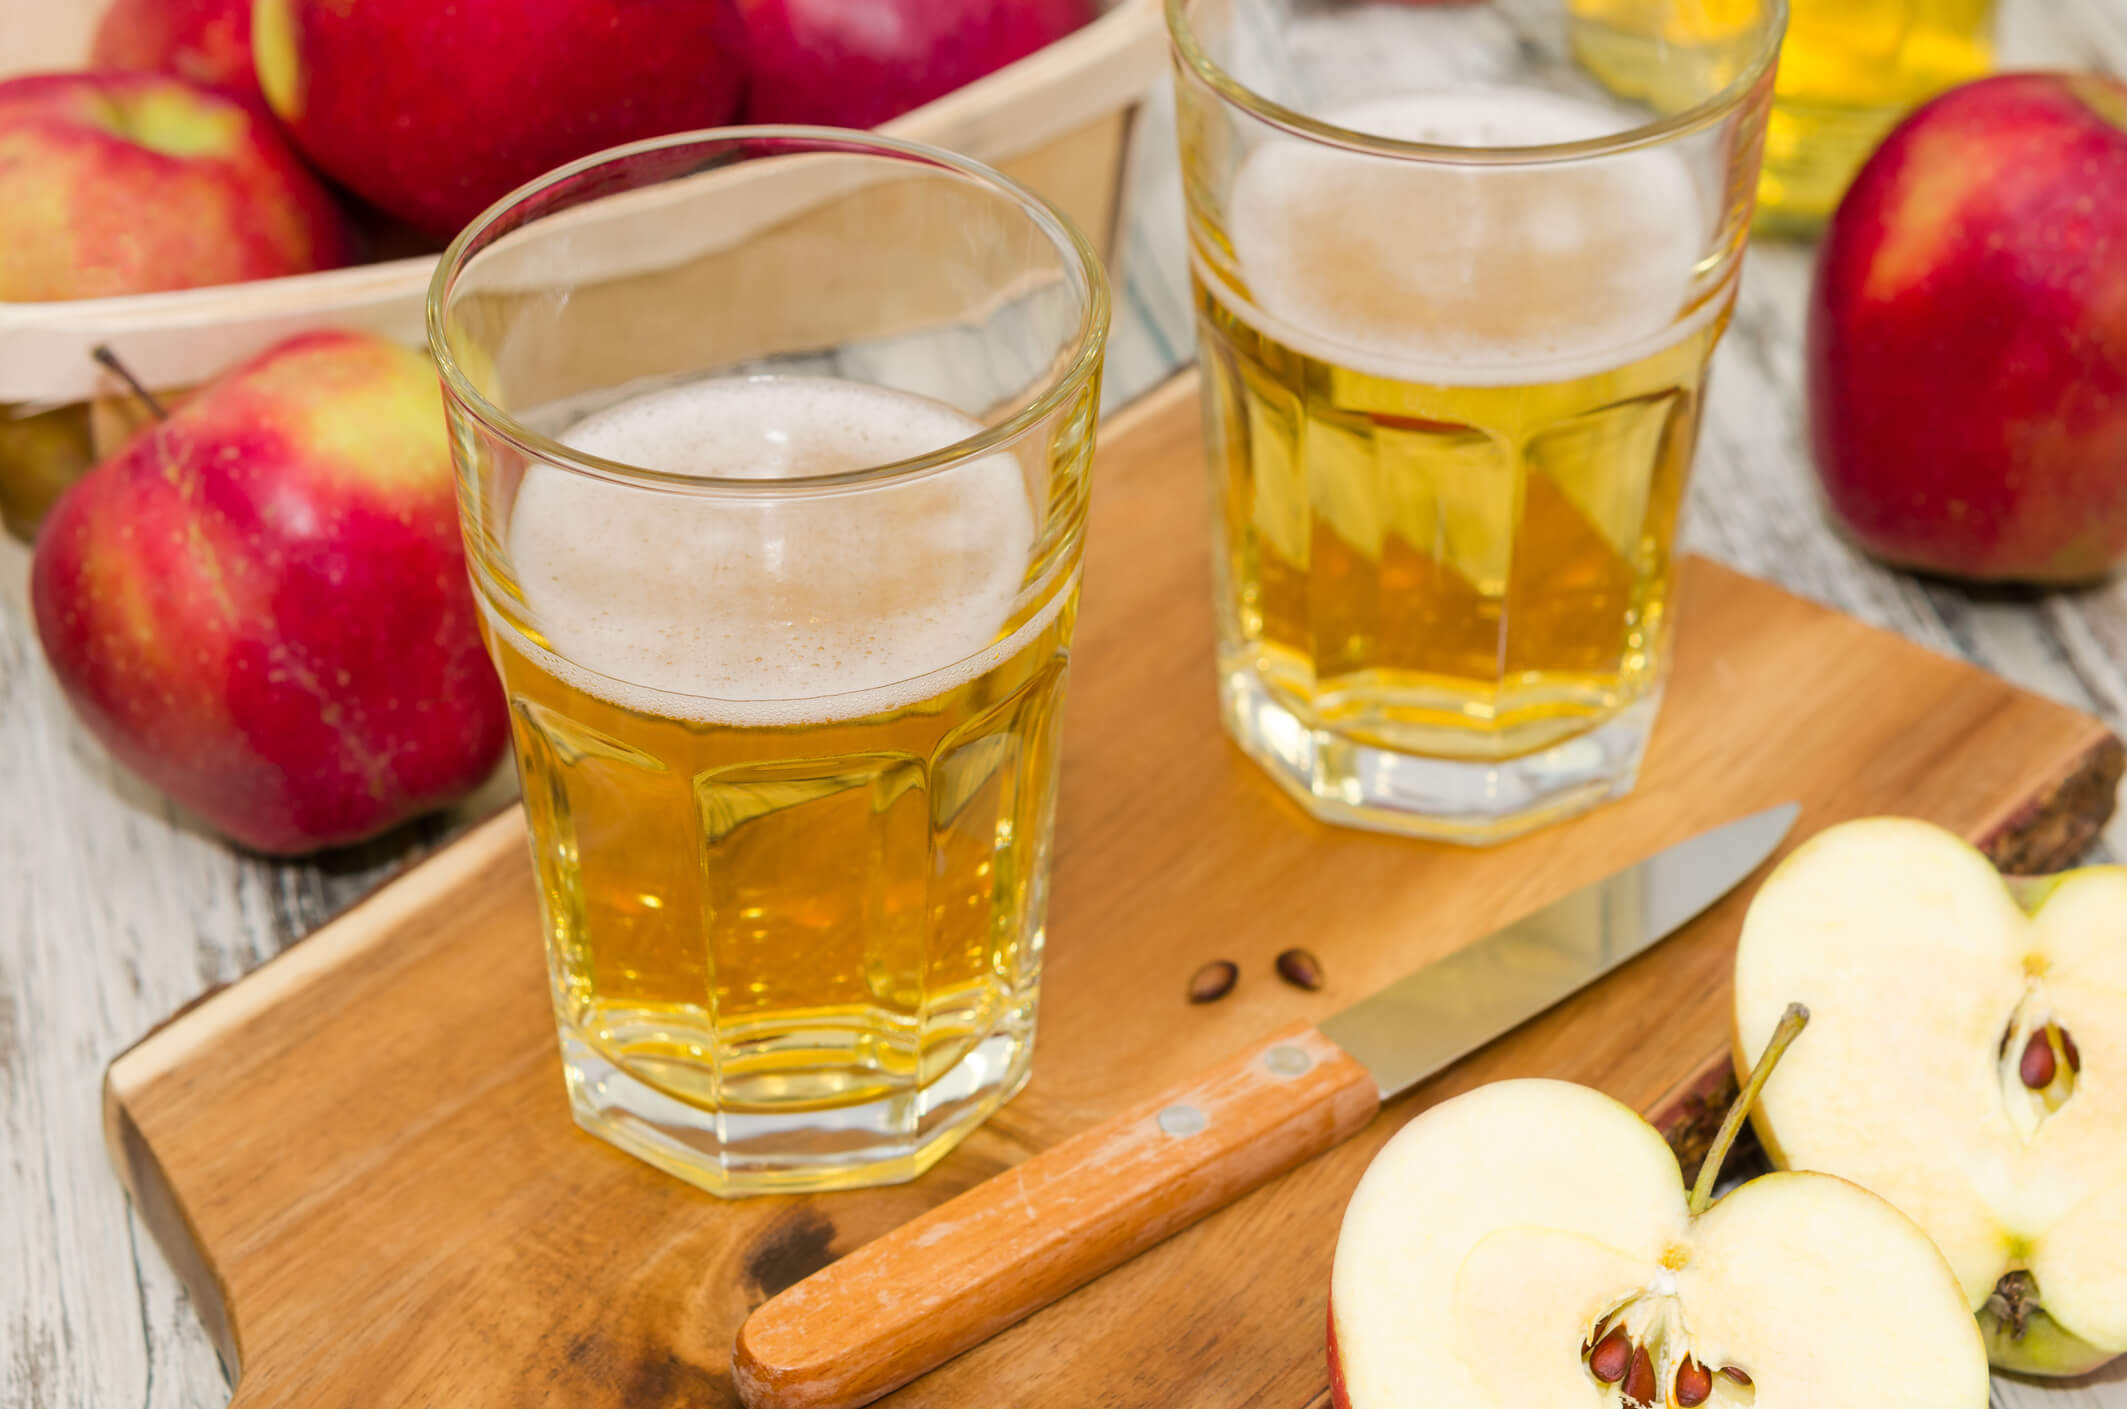 two glasses of cider with cut apples on a board